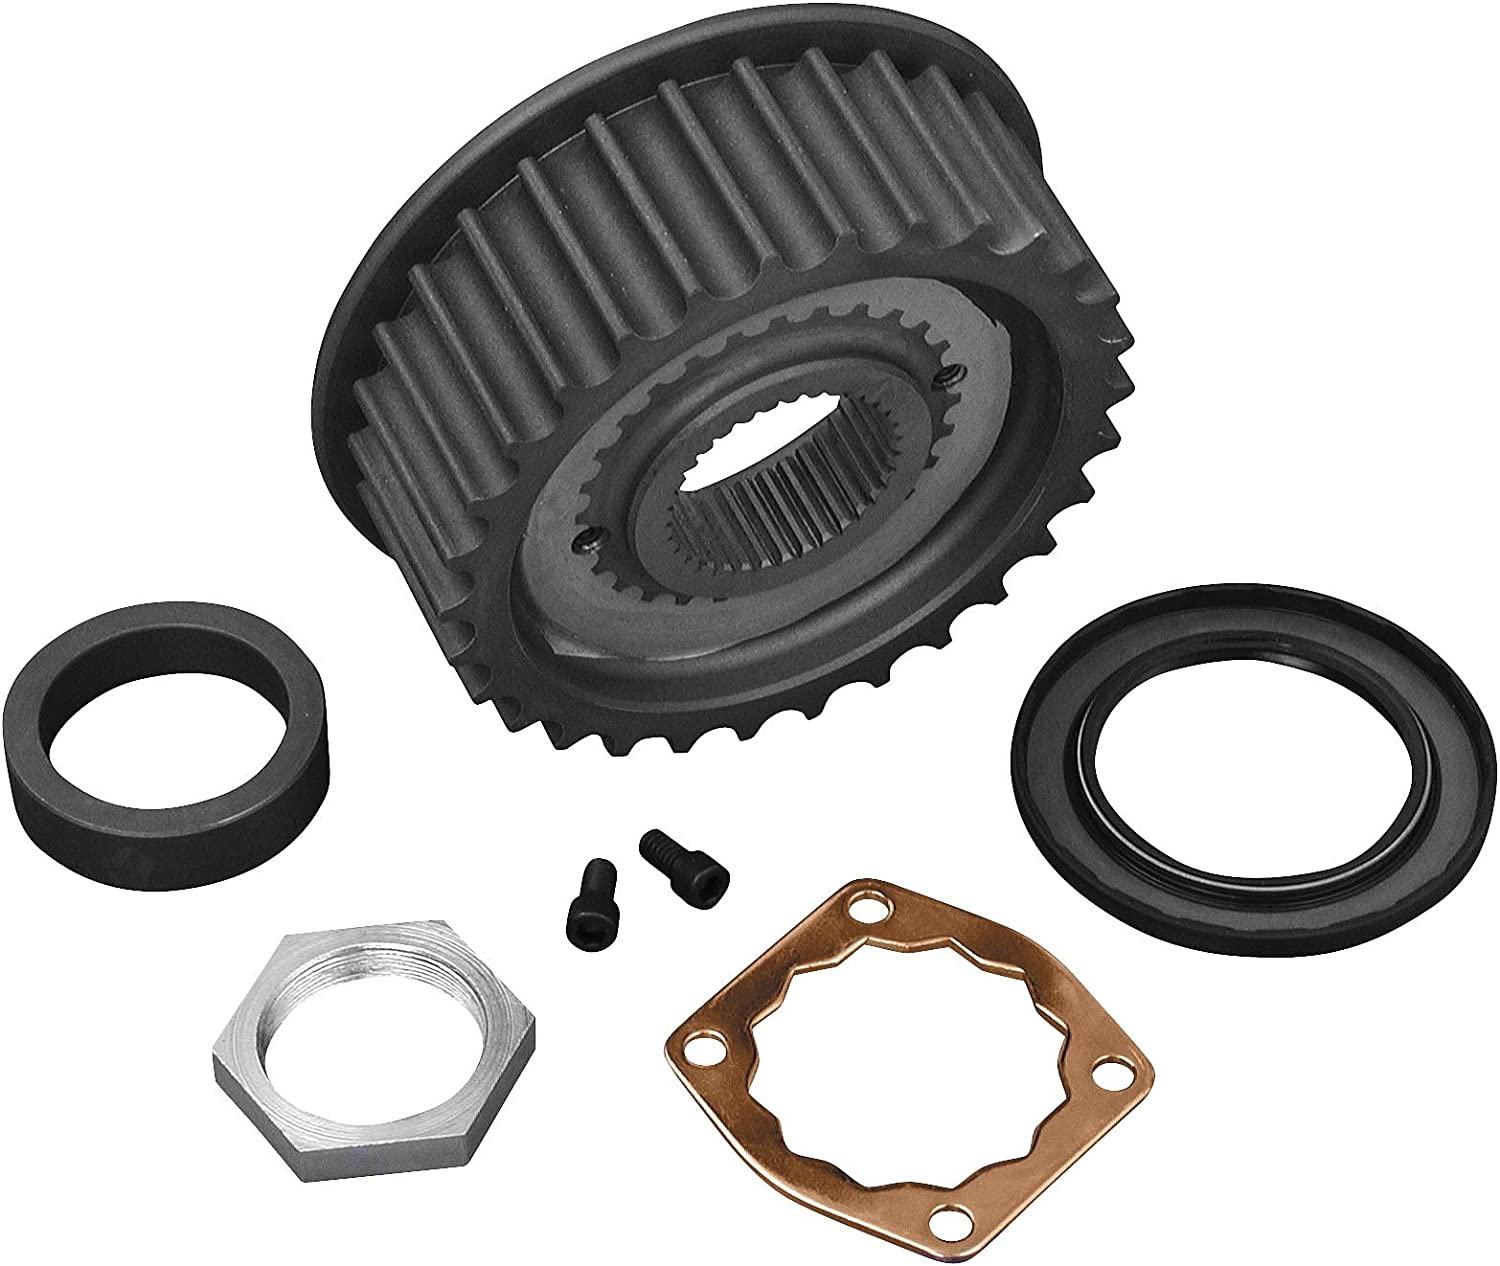 Drive Pulley Kit 32 Tooth,for Harley Davidson,by V-Twin